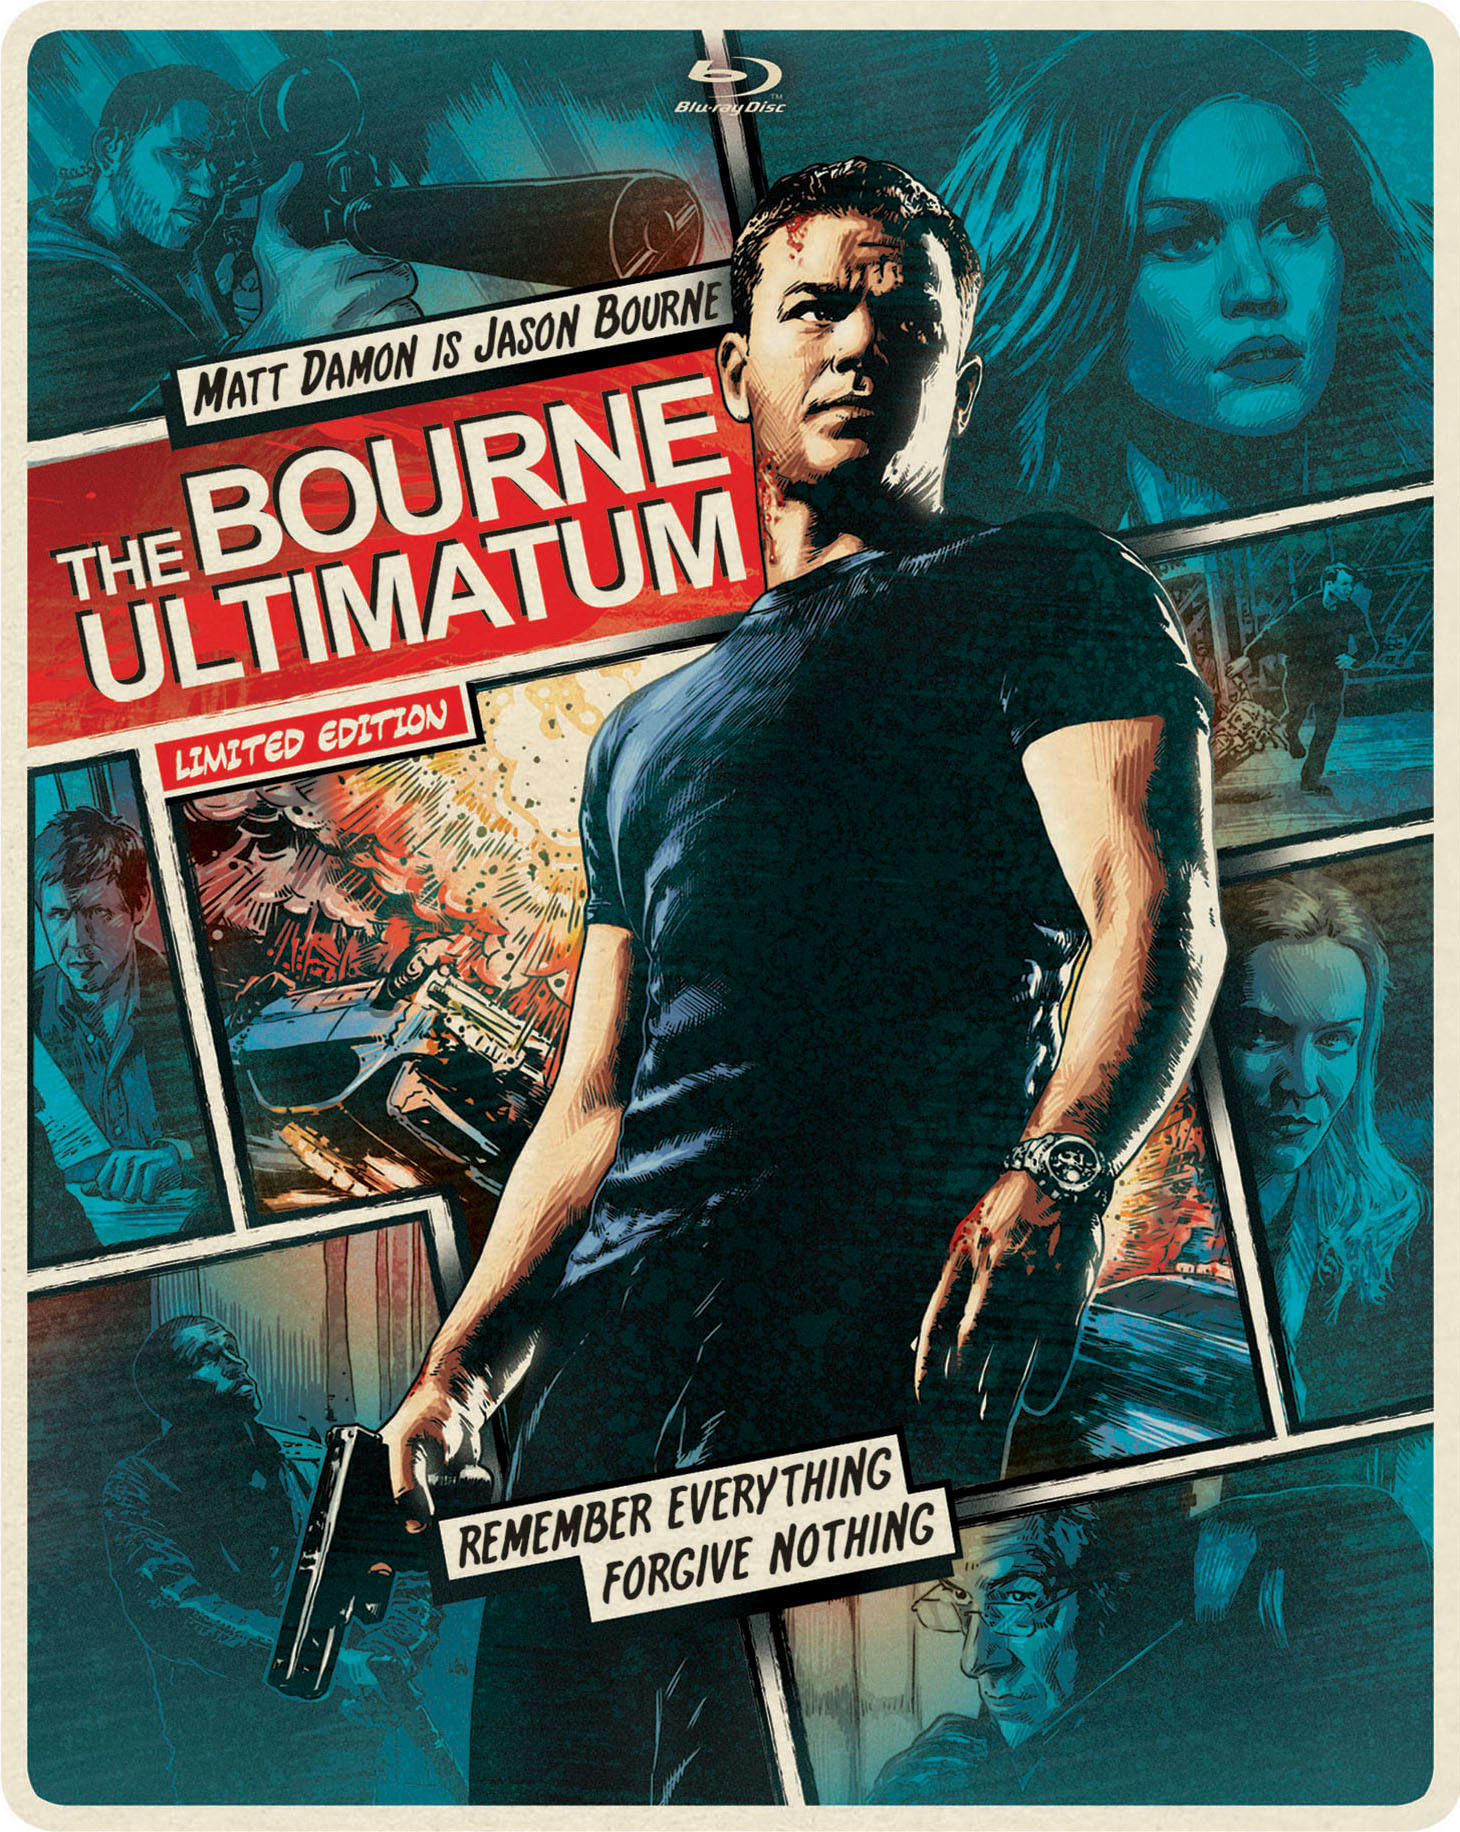 The Bourne Ultimatum (Limited Edition Comic Art Steelbook) [Blu-ray]